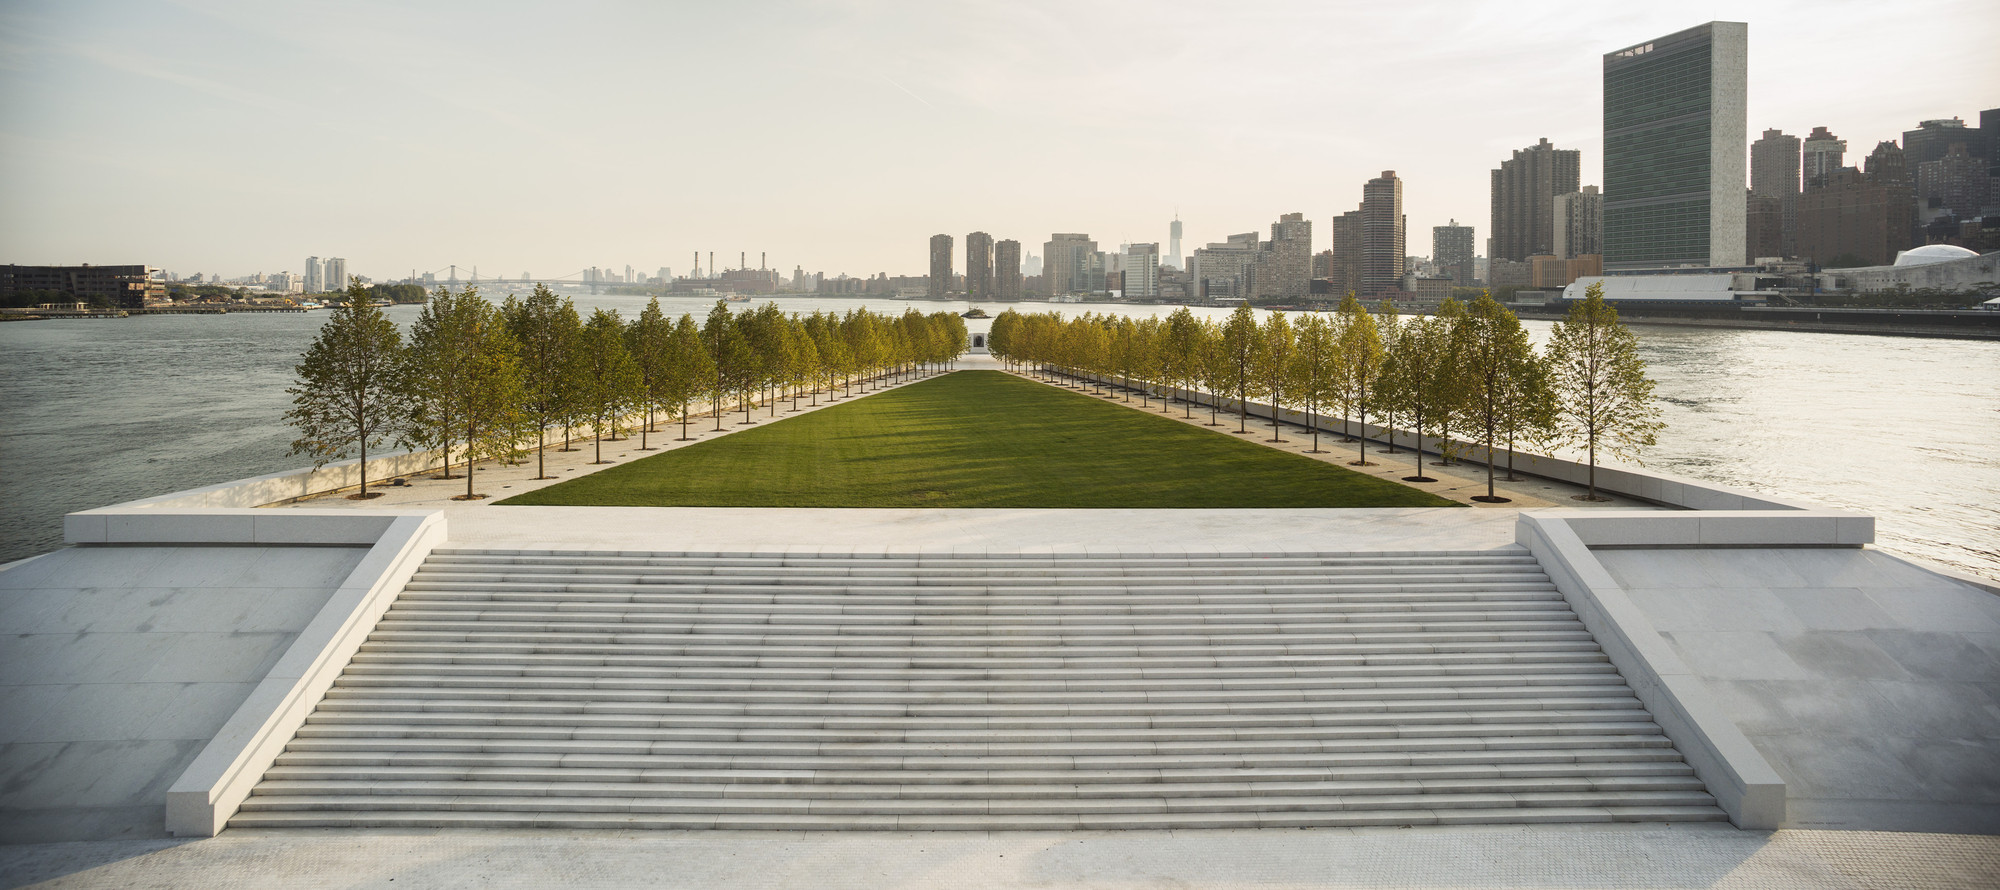 Four Freedoms Park, NYC - Architect, Louis Kahnphoto: ArchDaily.com